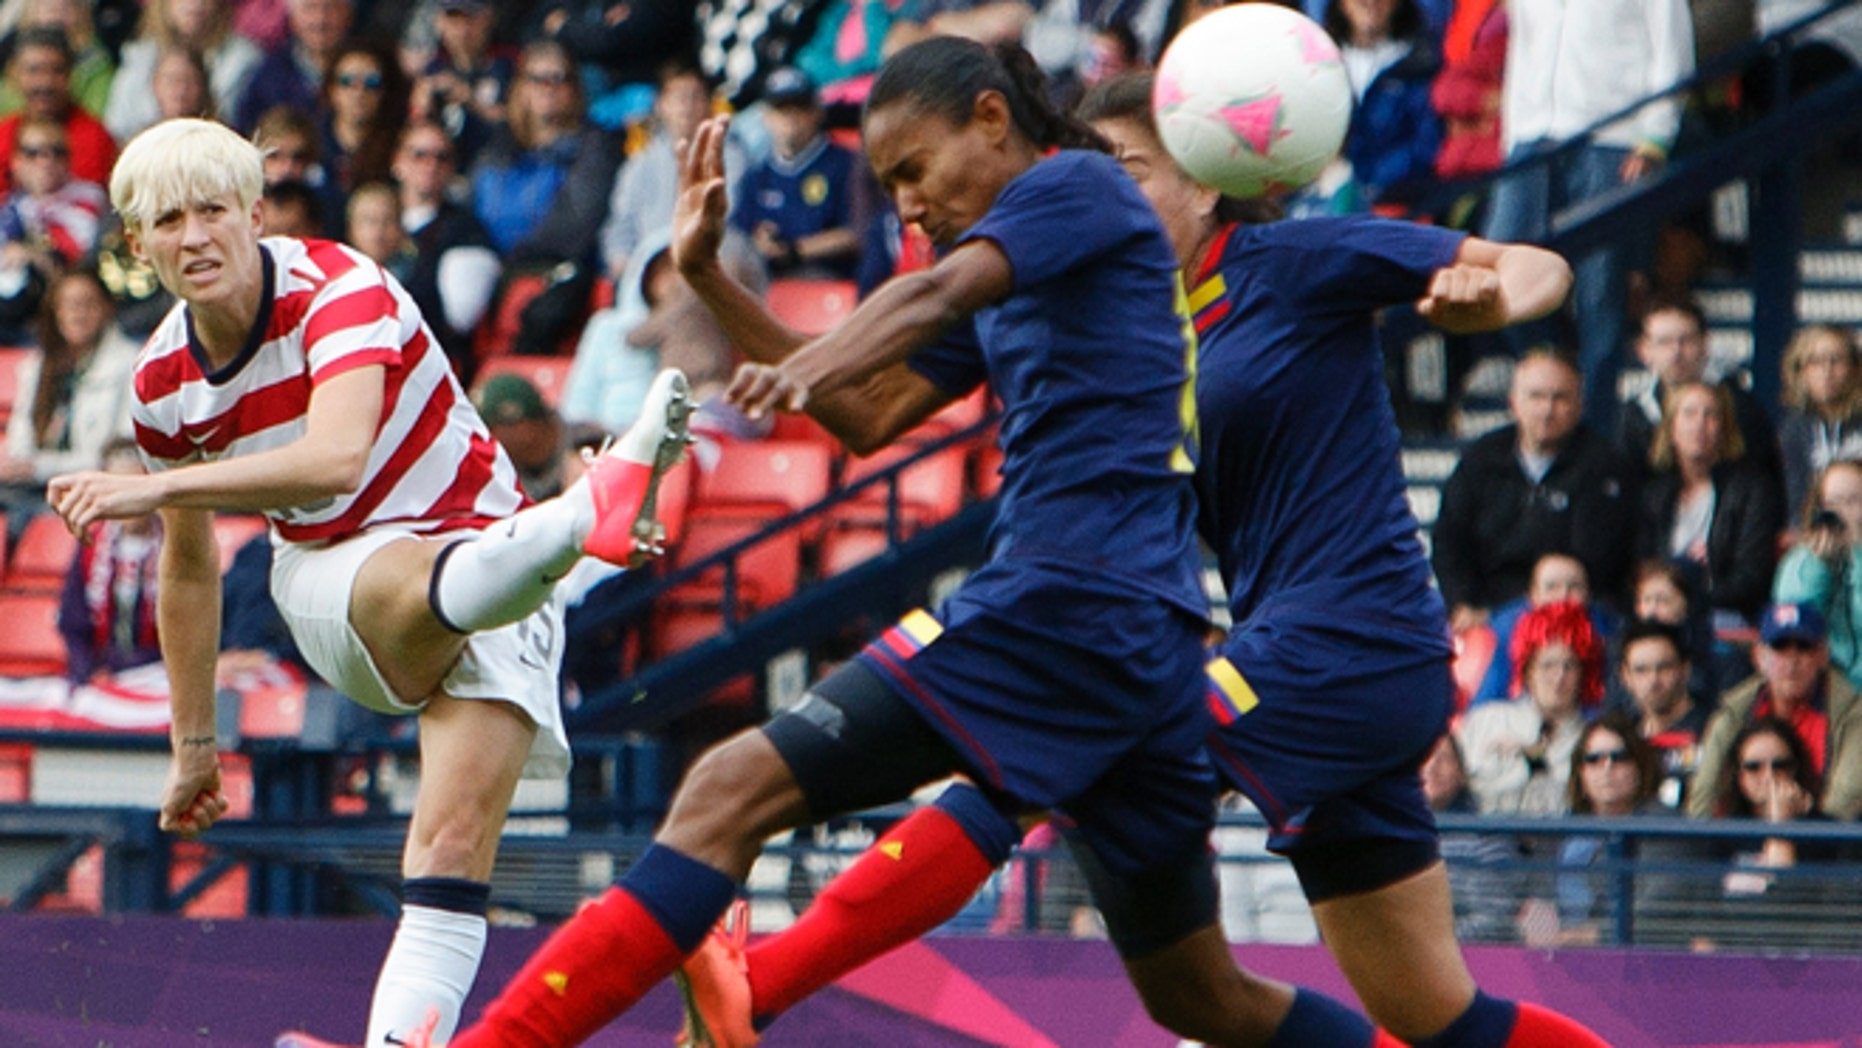 July 28, 2012: United States' Megan Rapinoe, left, shoots and scores the opening goal during the group G women's soccer match between the United States and Colombia at the London 2012 Summer Olympics in Glasgow, Scotland.